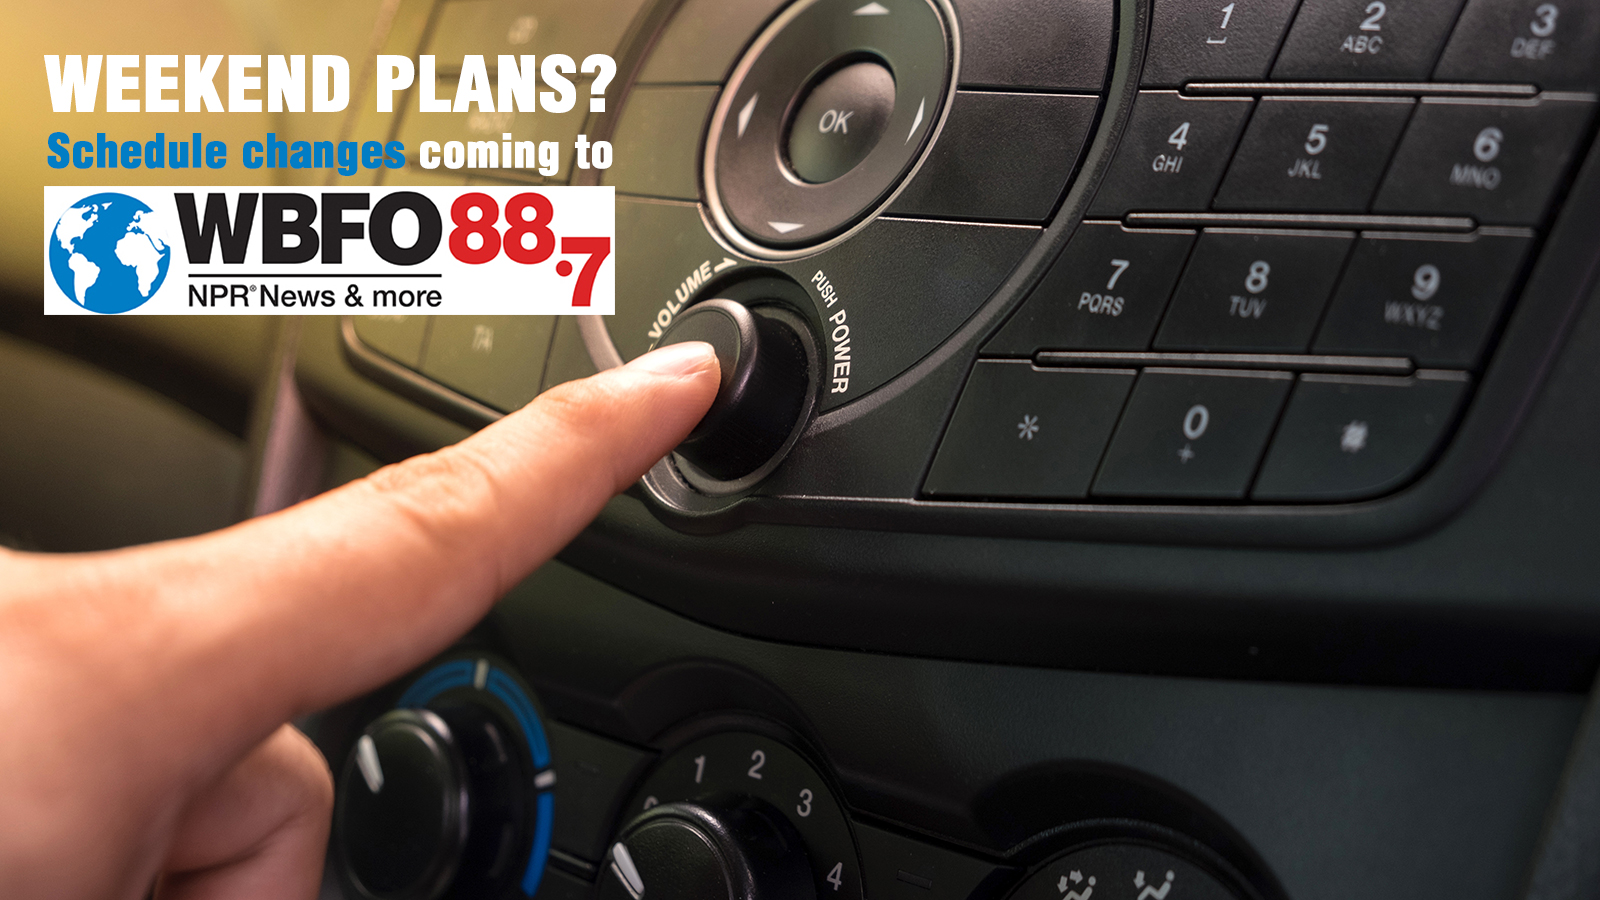 Schedule Changes Coming To WBFO